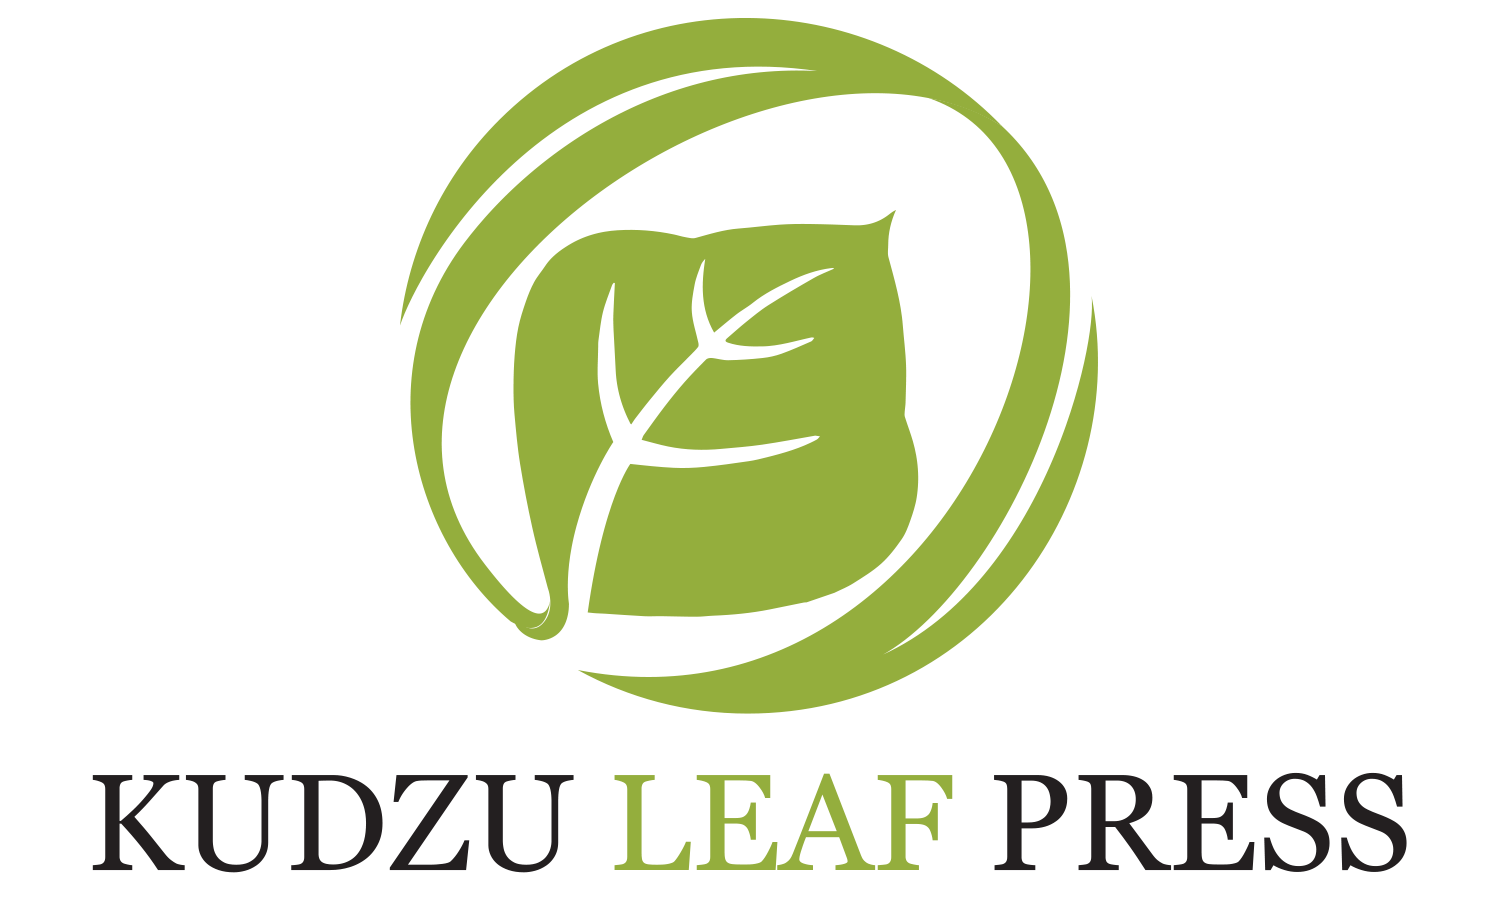 Kudzu Leaf Press